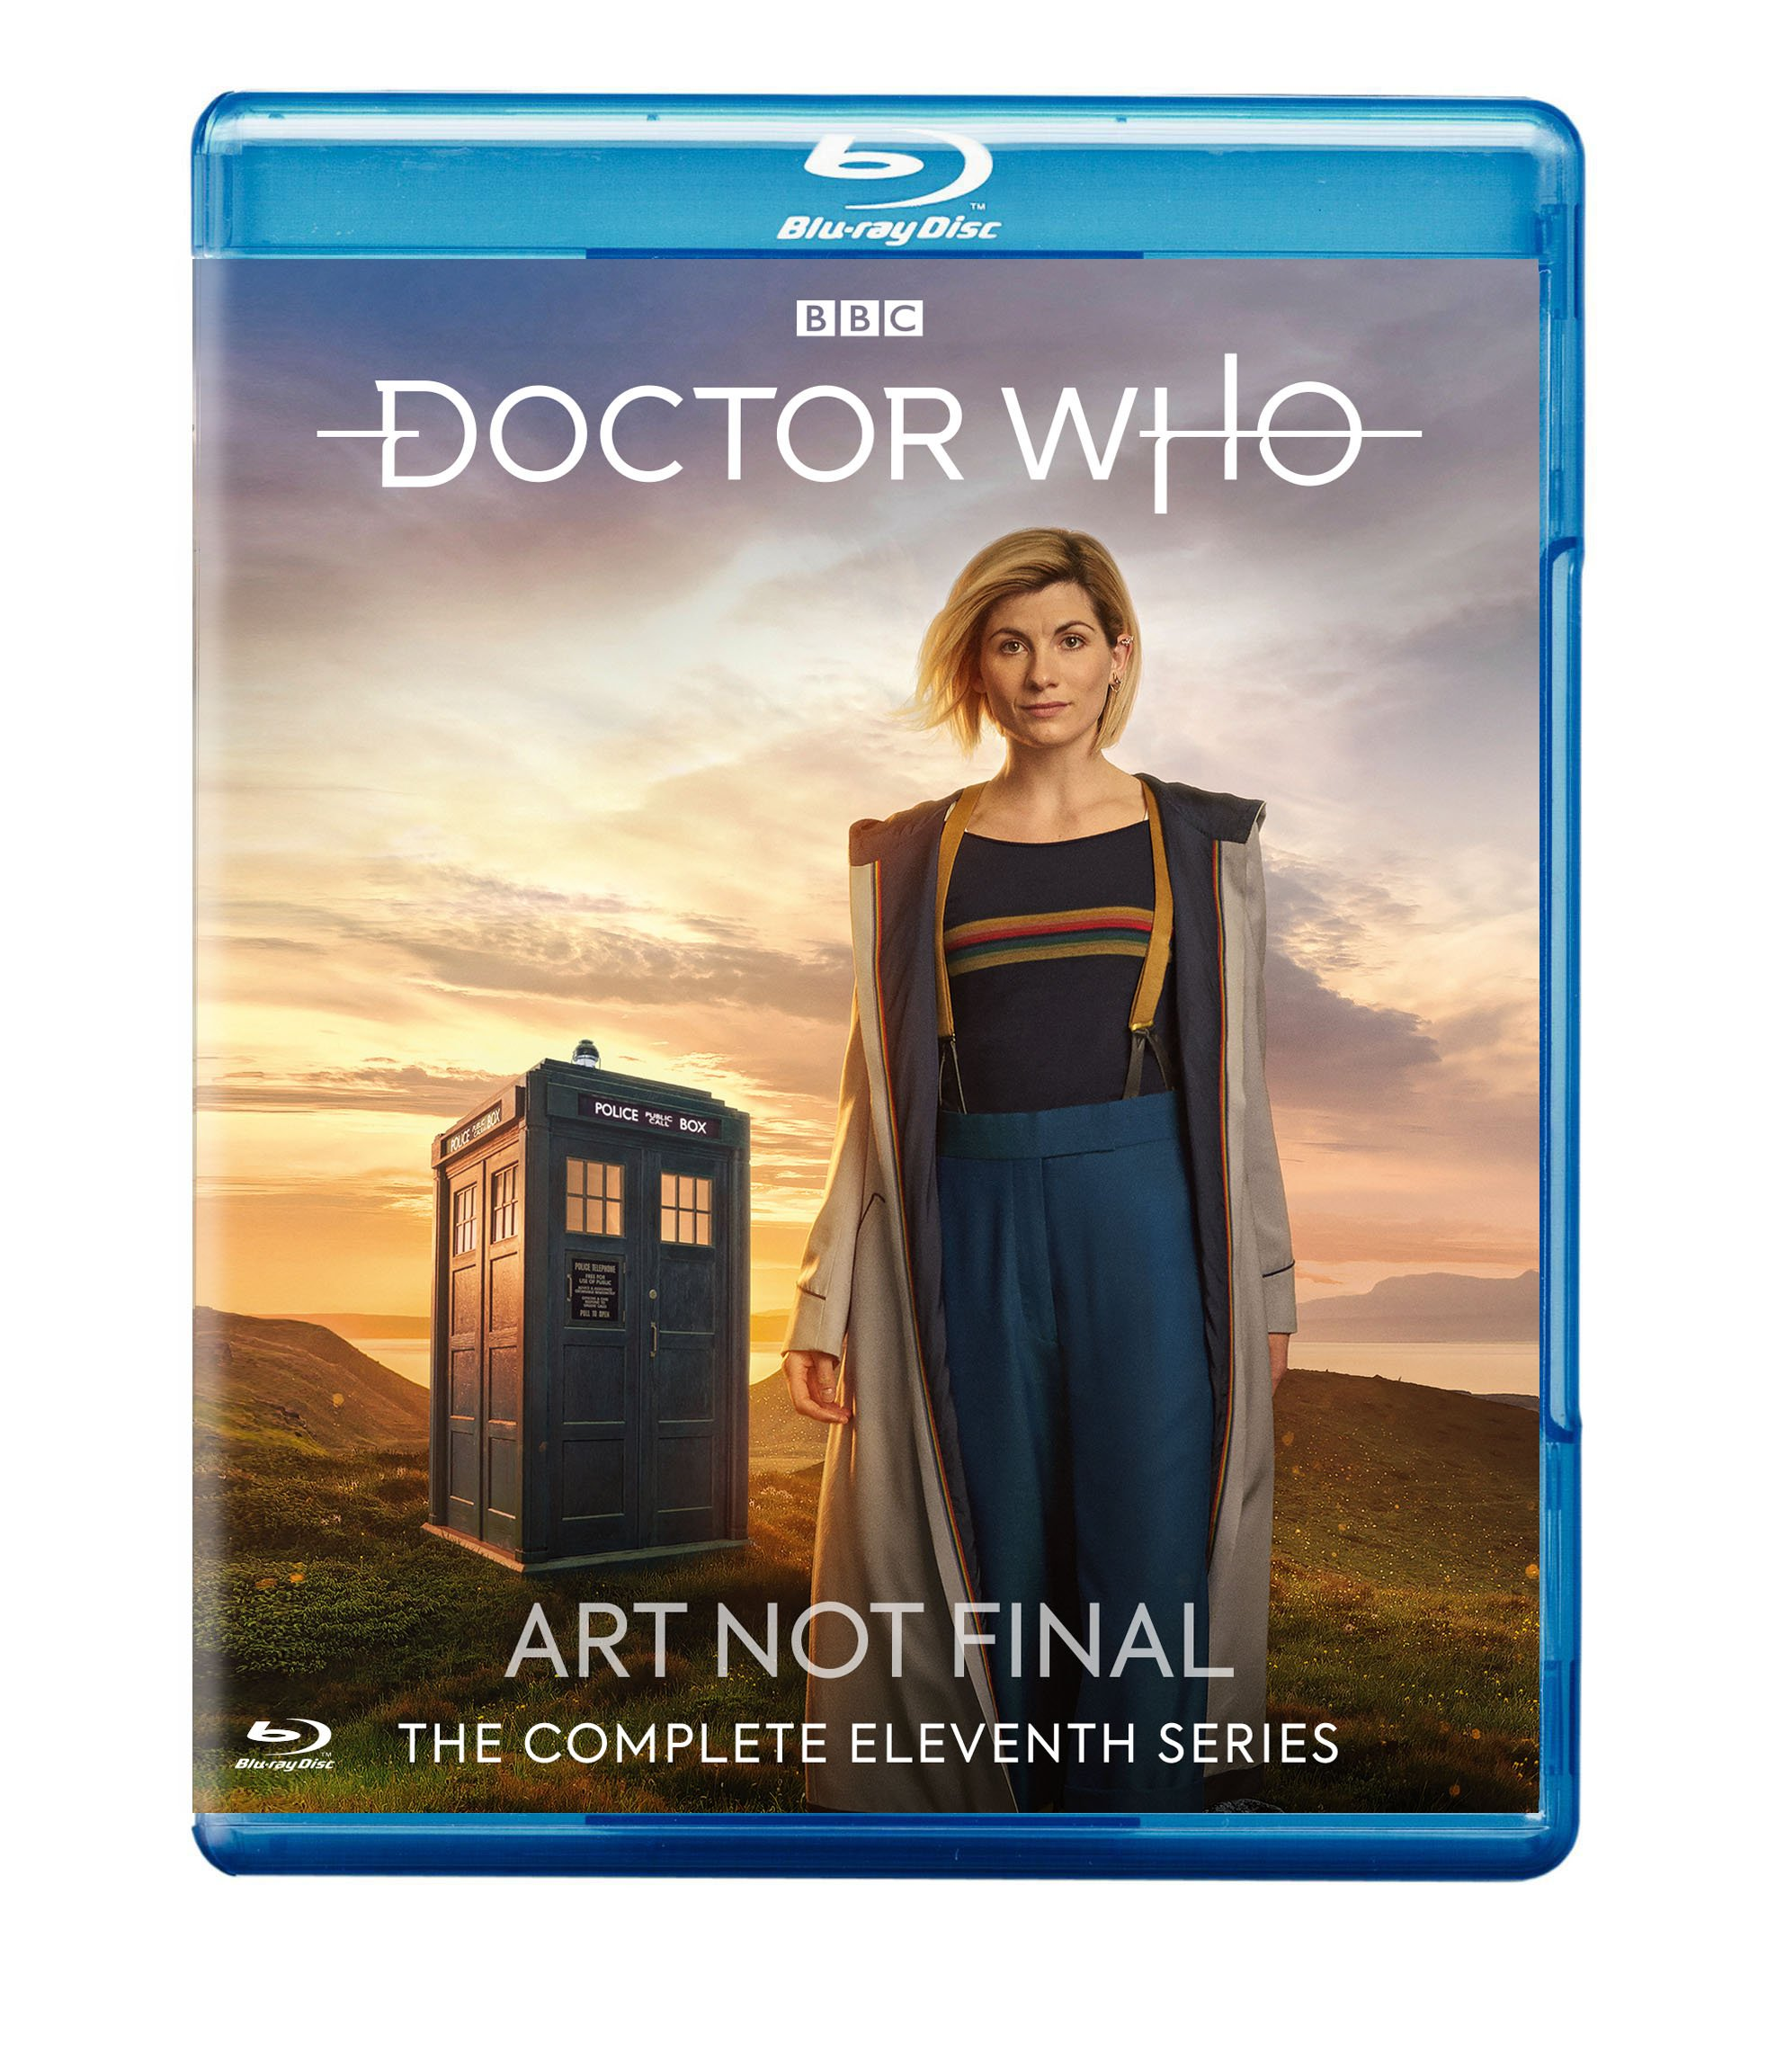 Doctor Who: The Complete Eleventh Series (BD) [Blu-ray]